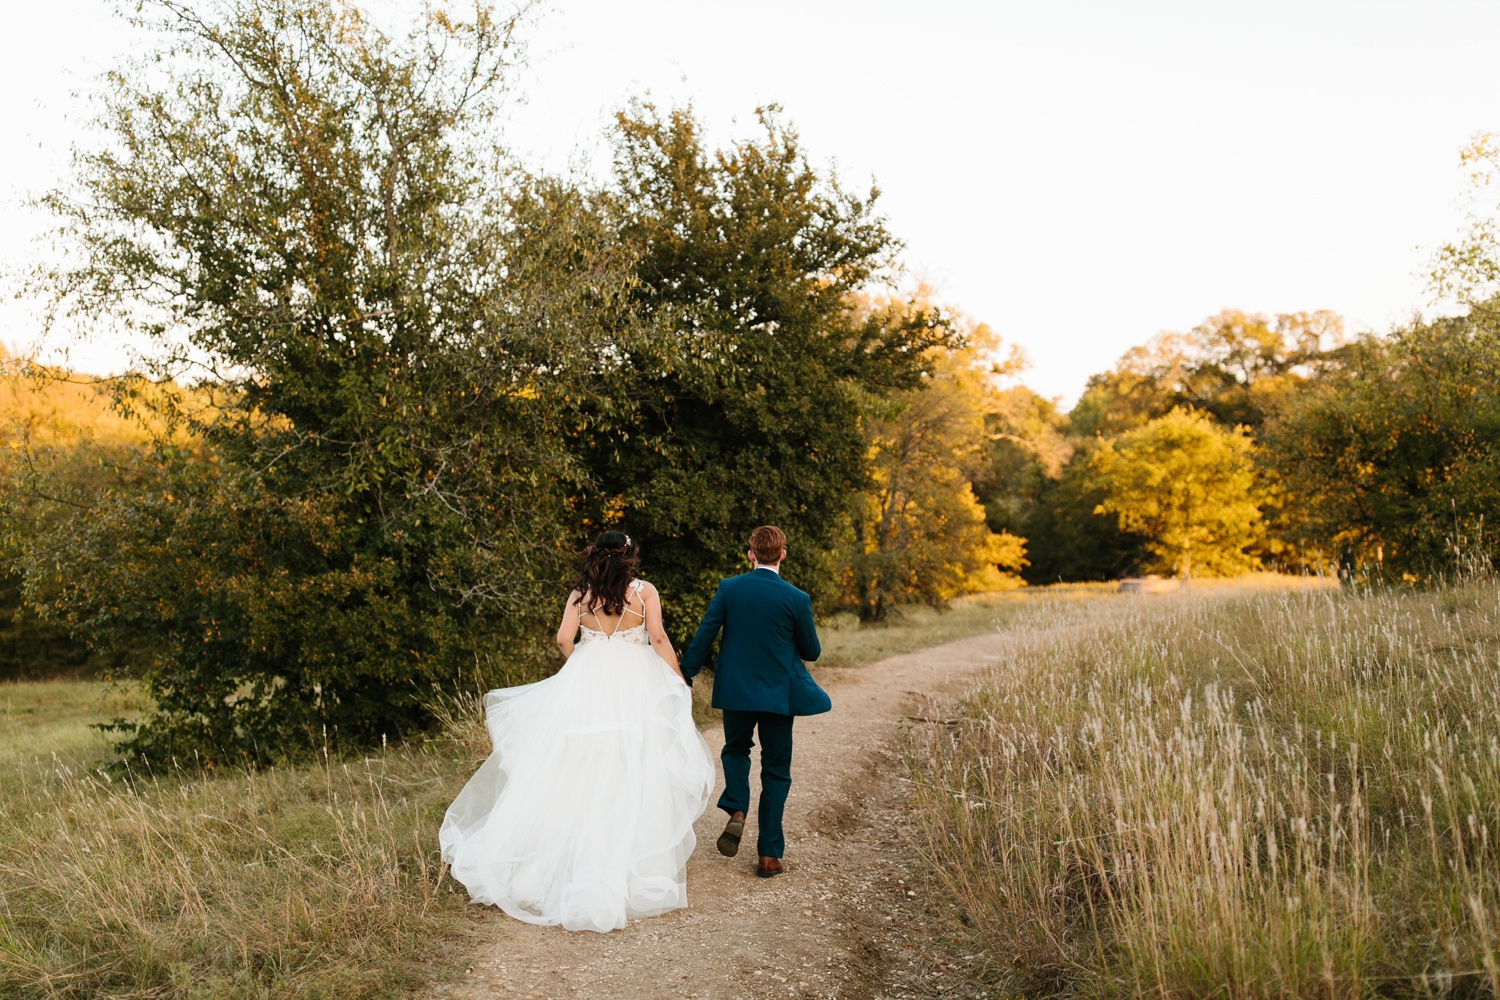 Grant + Lysette | a vibrant, deep burgundy and navy, and mixed metals wedding at Hidden Pines Chapel by North Texas Wedding Photographer Rachel Meagan Photography 246